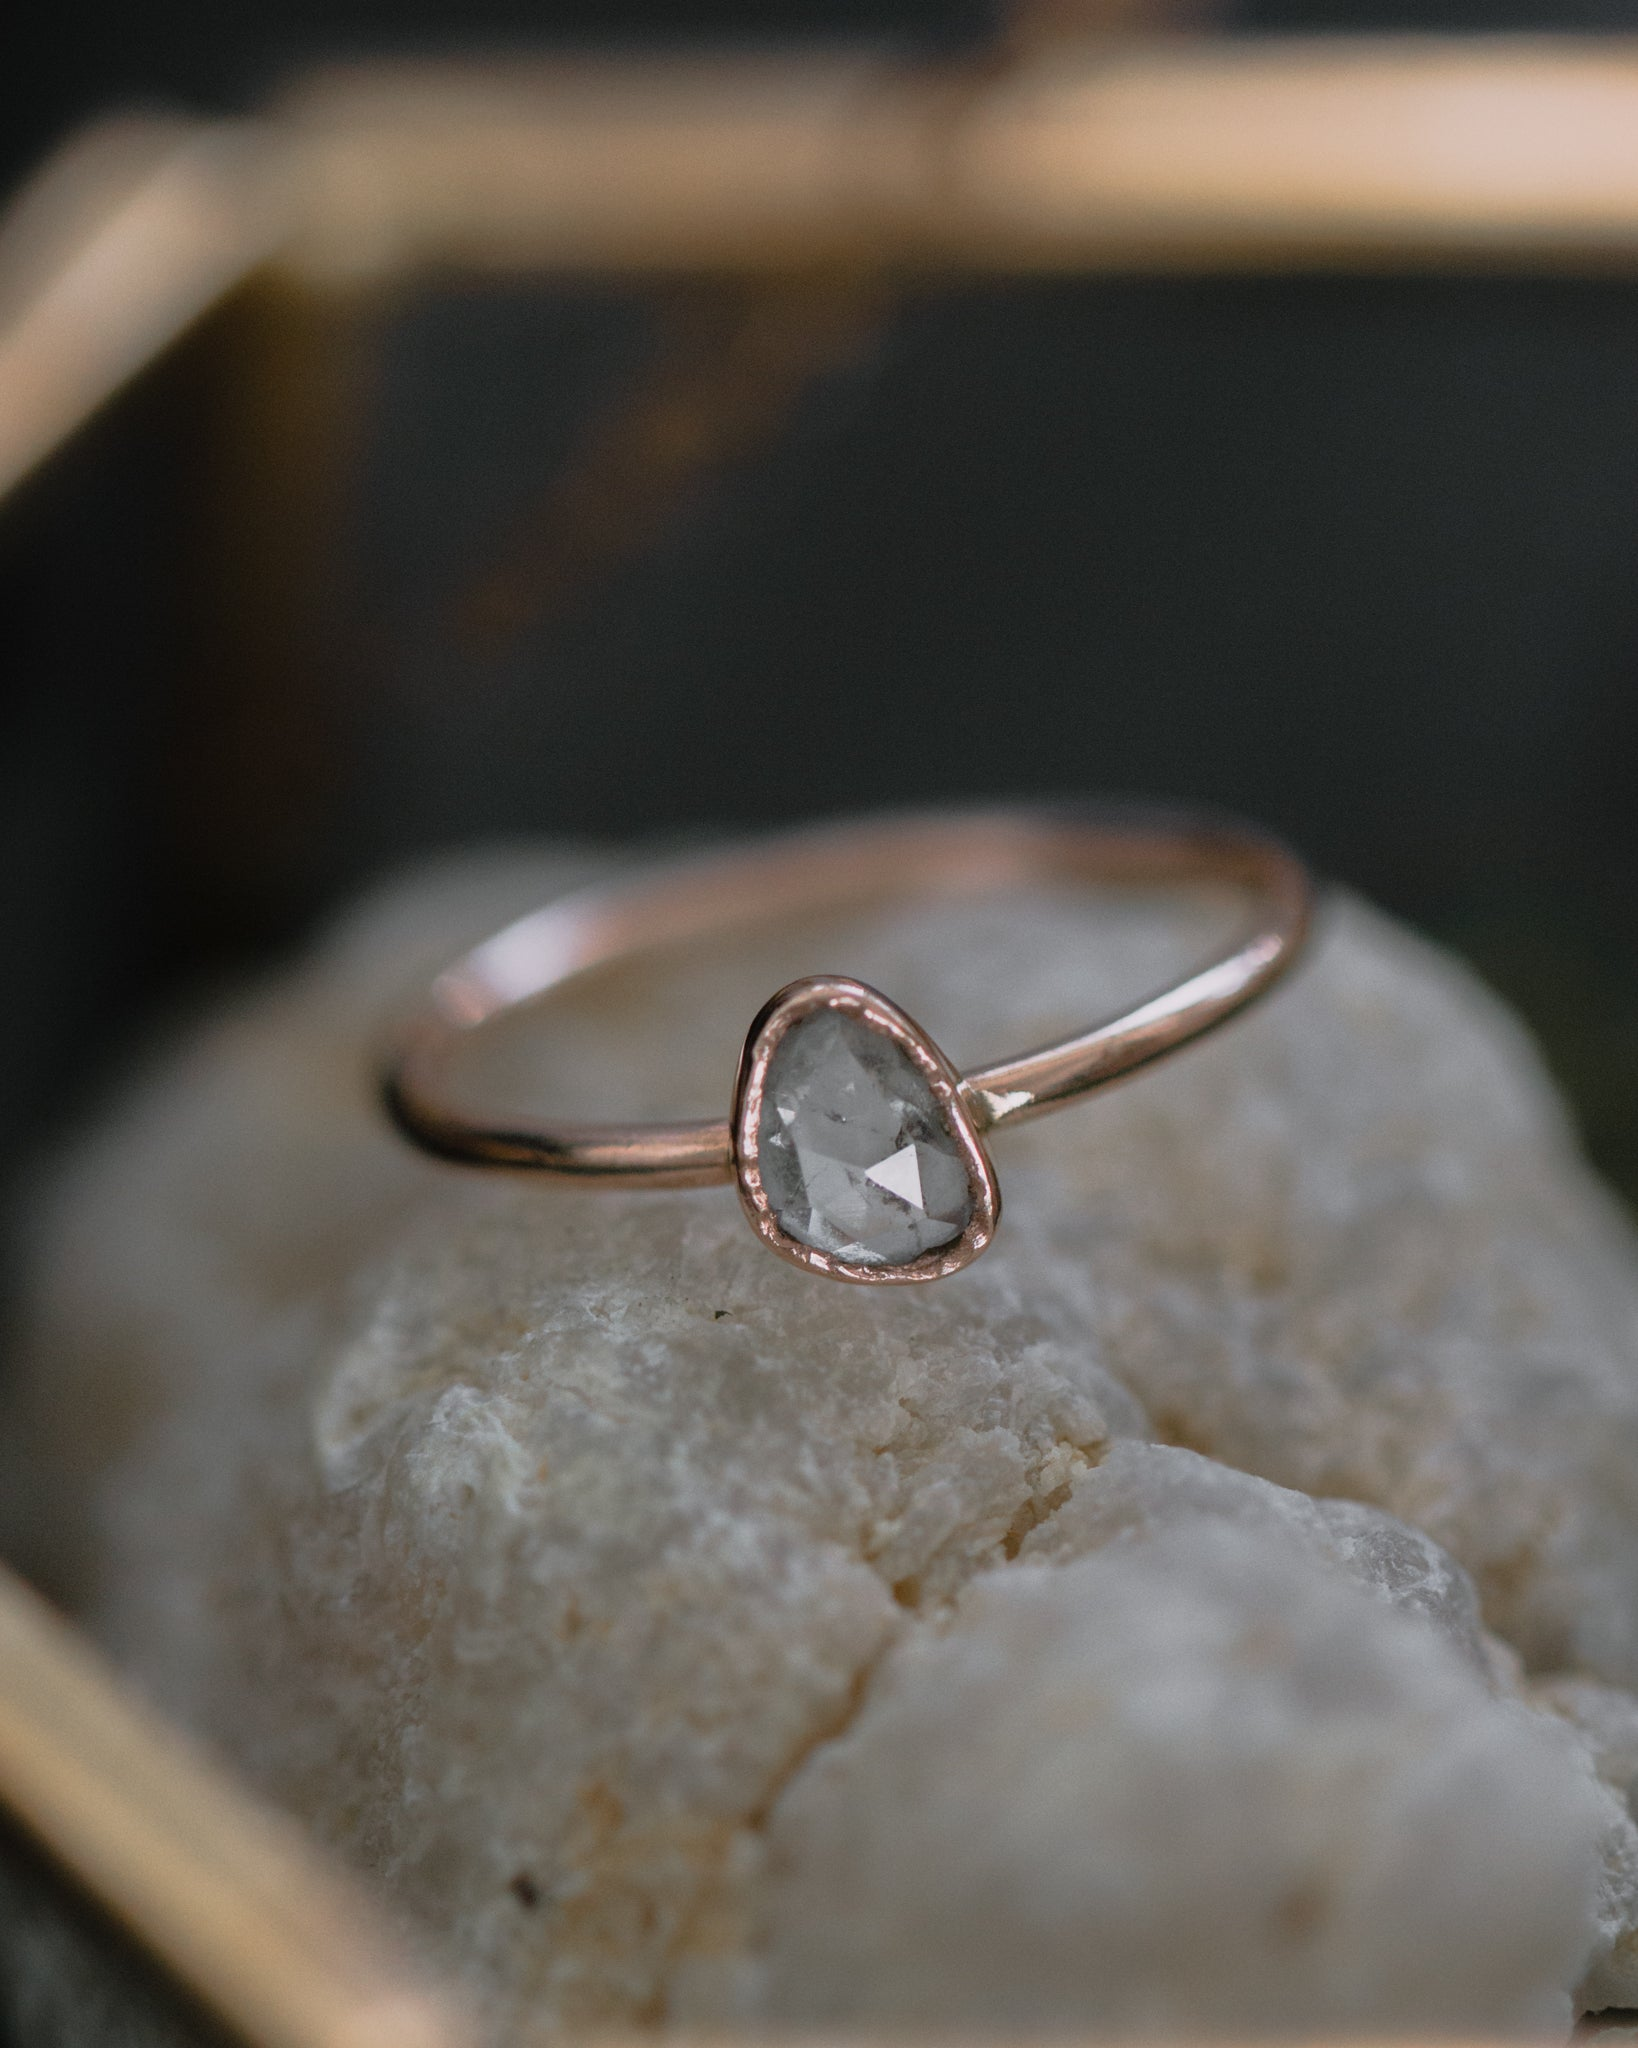 SOLD OUT - rose cut diamond slice ring with rough bezel